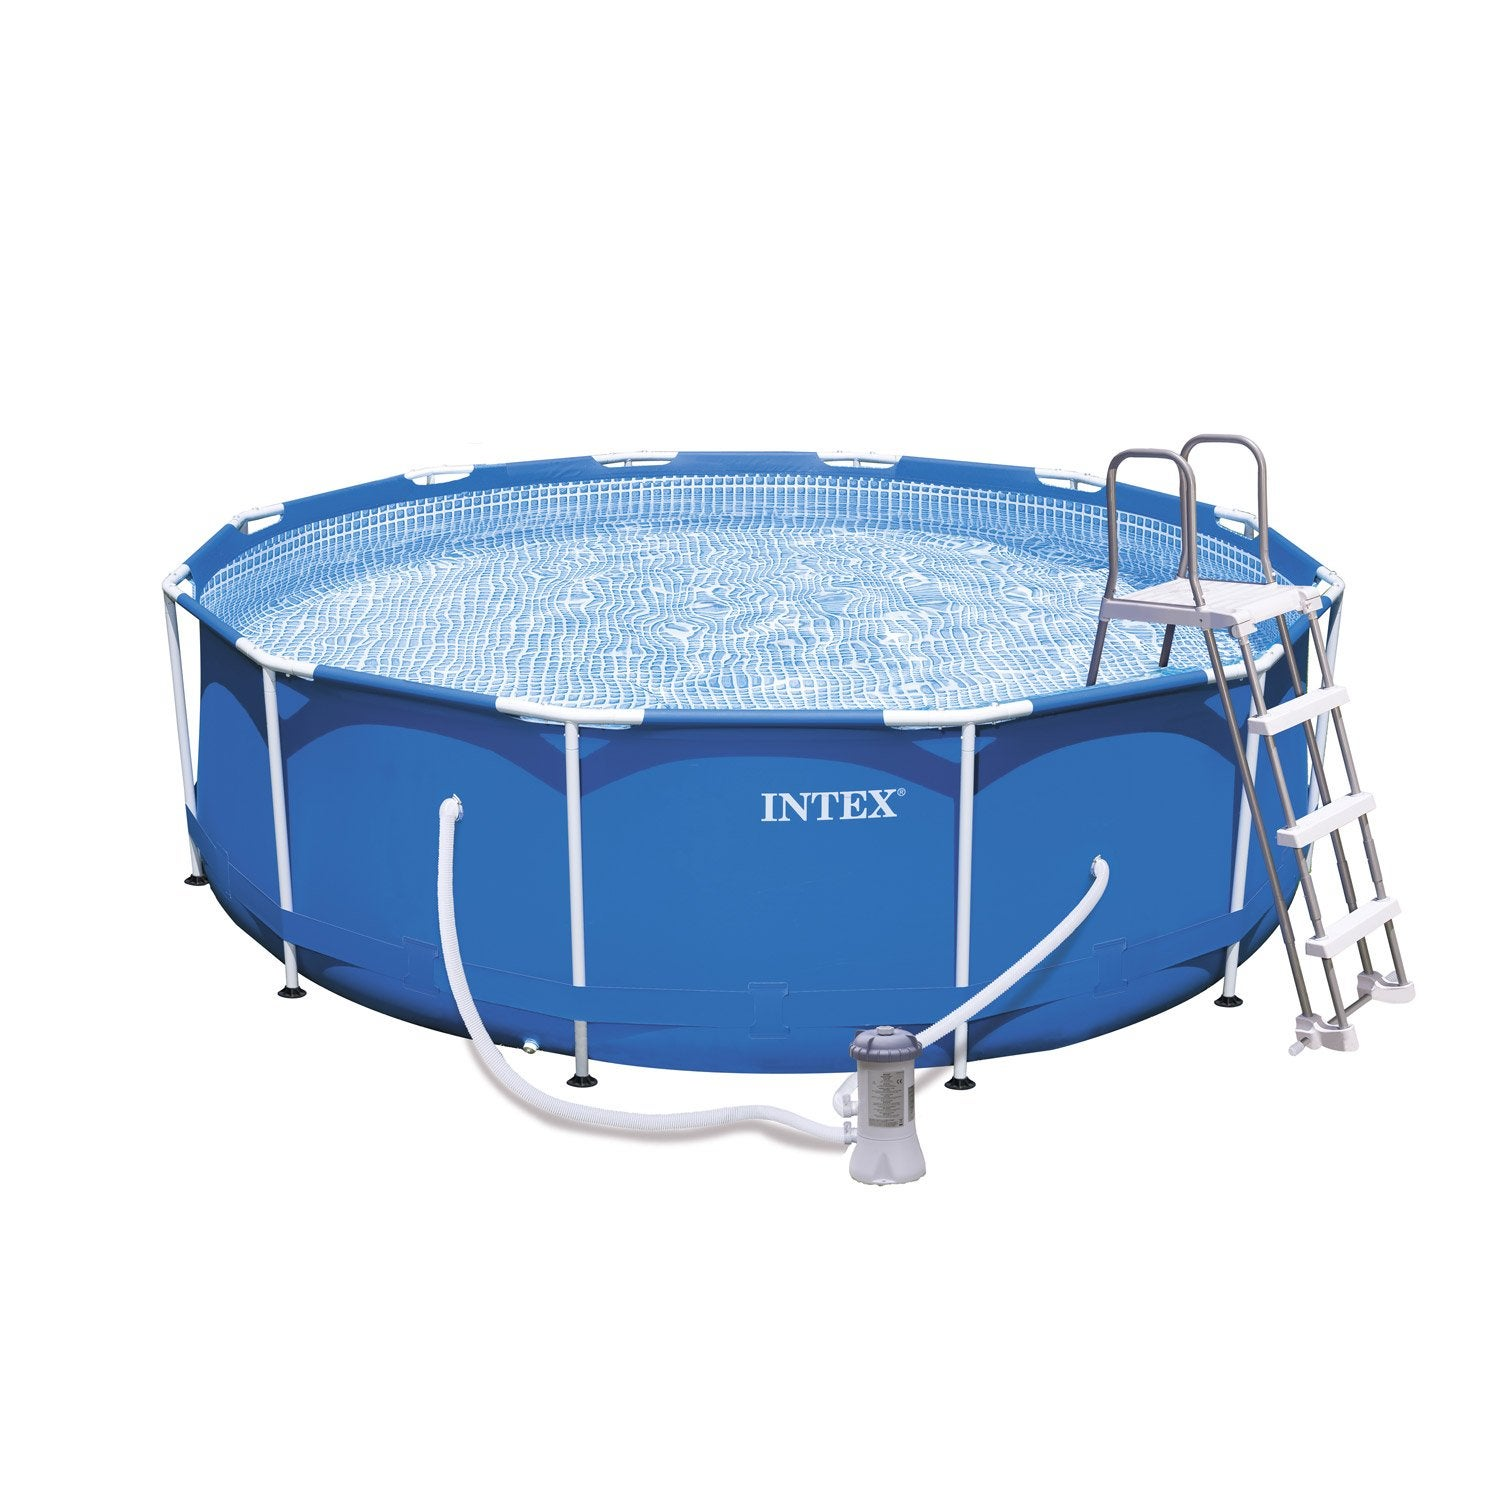 Piscine hors sol autoportante tubulaire m tal frame intex for Piscine hors sol intex ronde